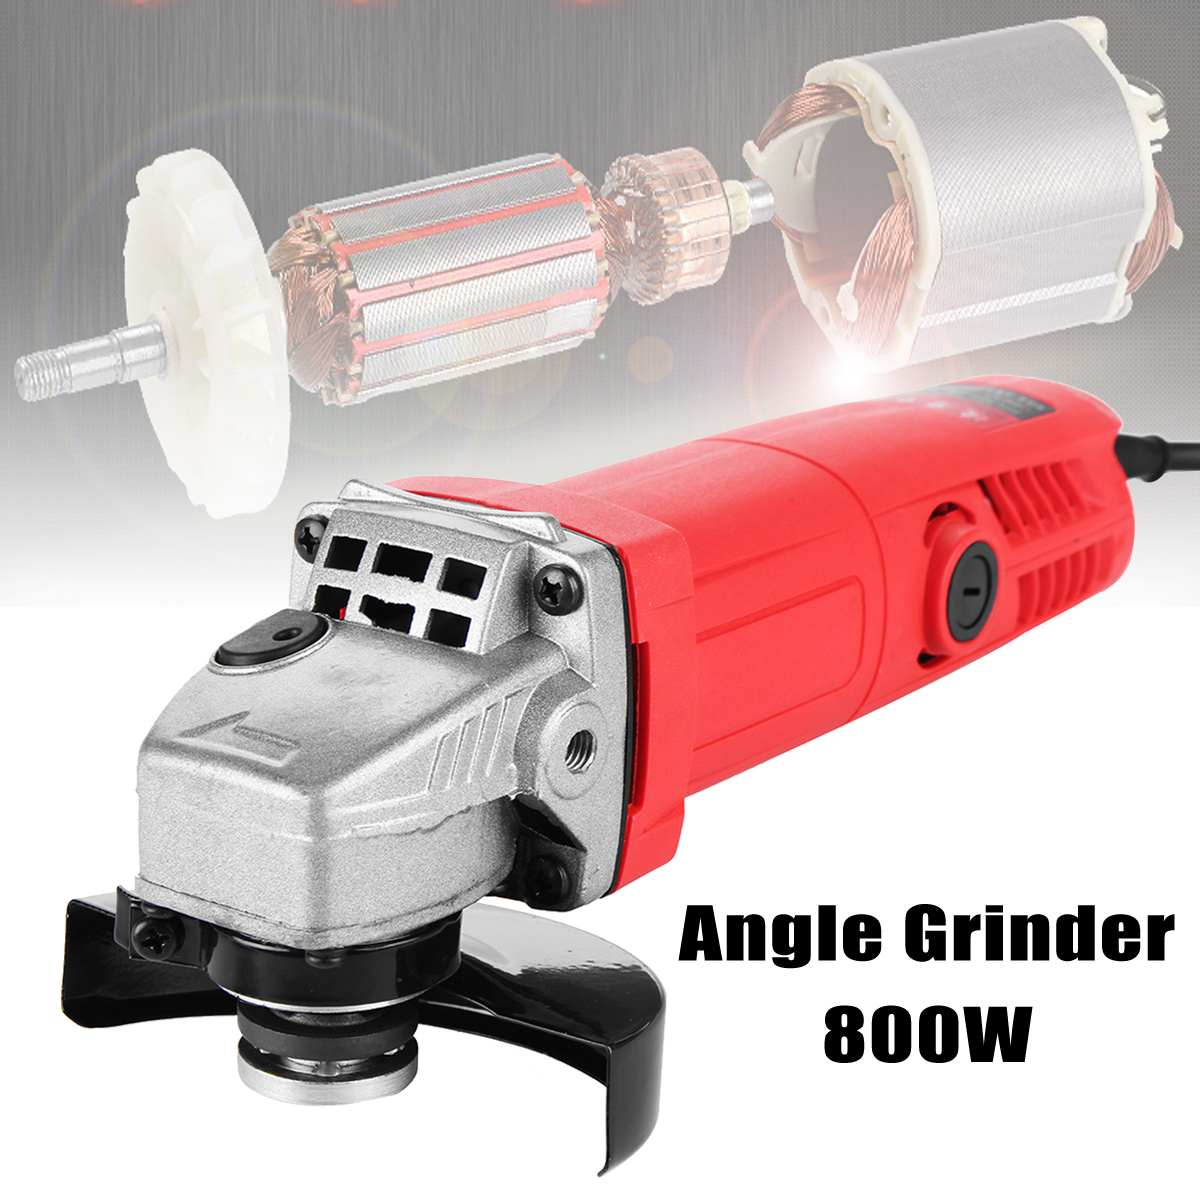 800W 220V 100mm Portable Electric Angle Grinder Muti-Function Household Polish Machine Grinding Cutting Polishing Machine